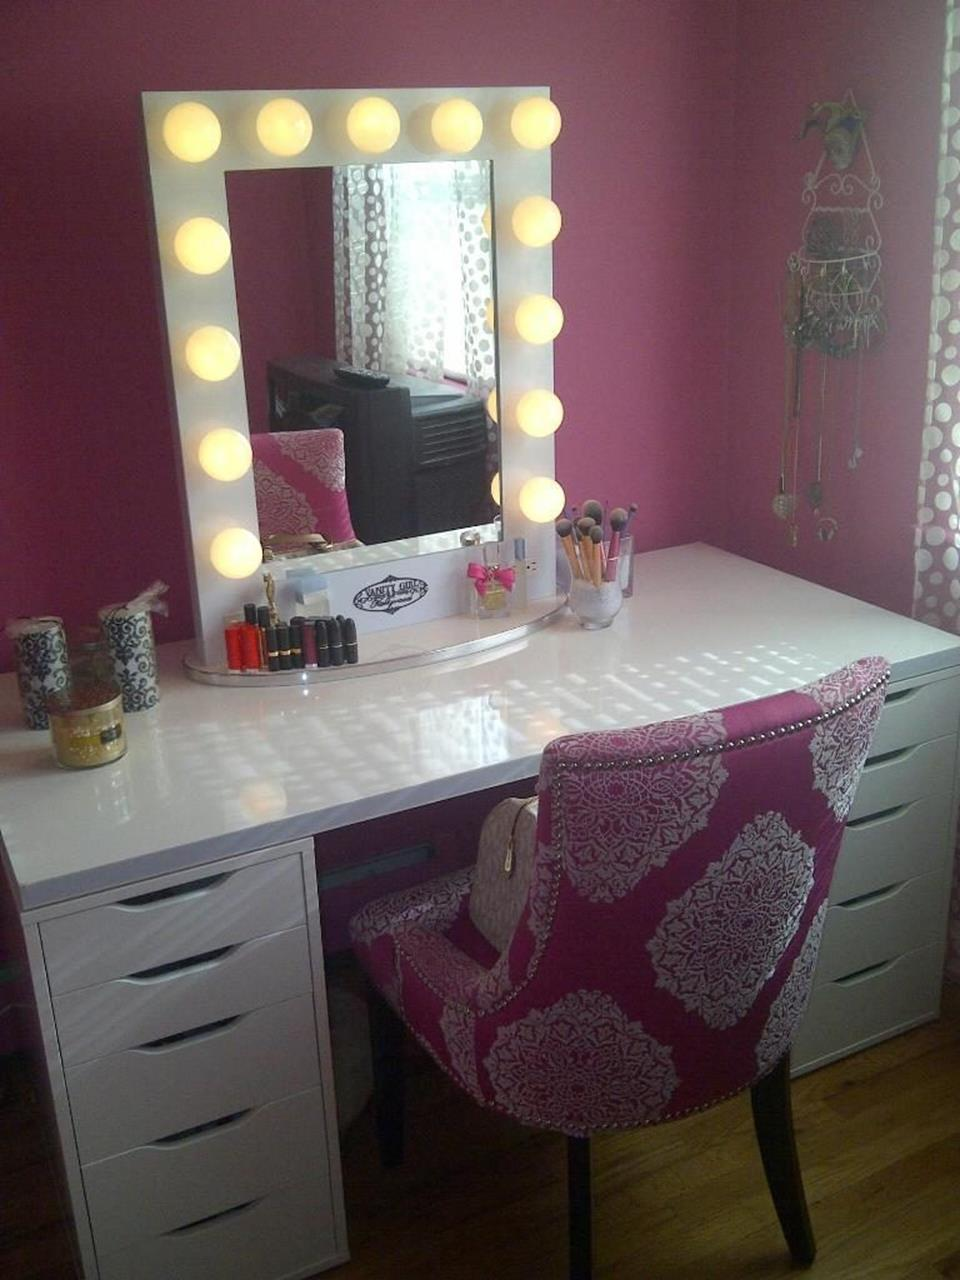 Bedroom Vanity Set With Lights Around Mirror 11